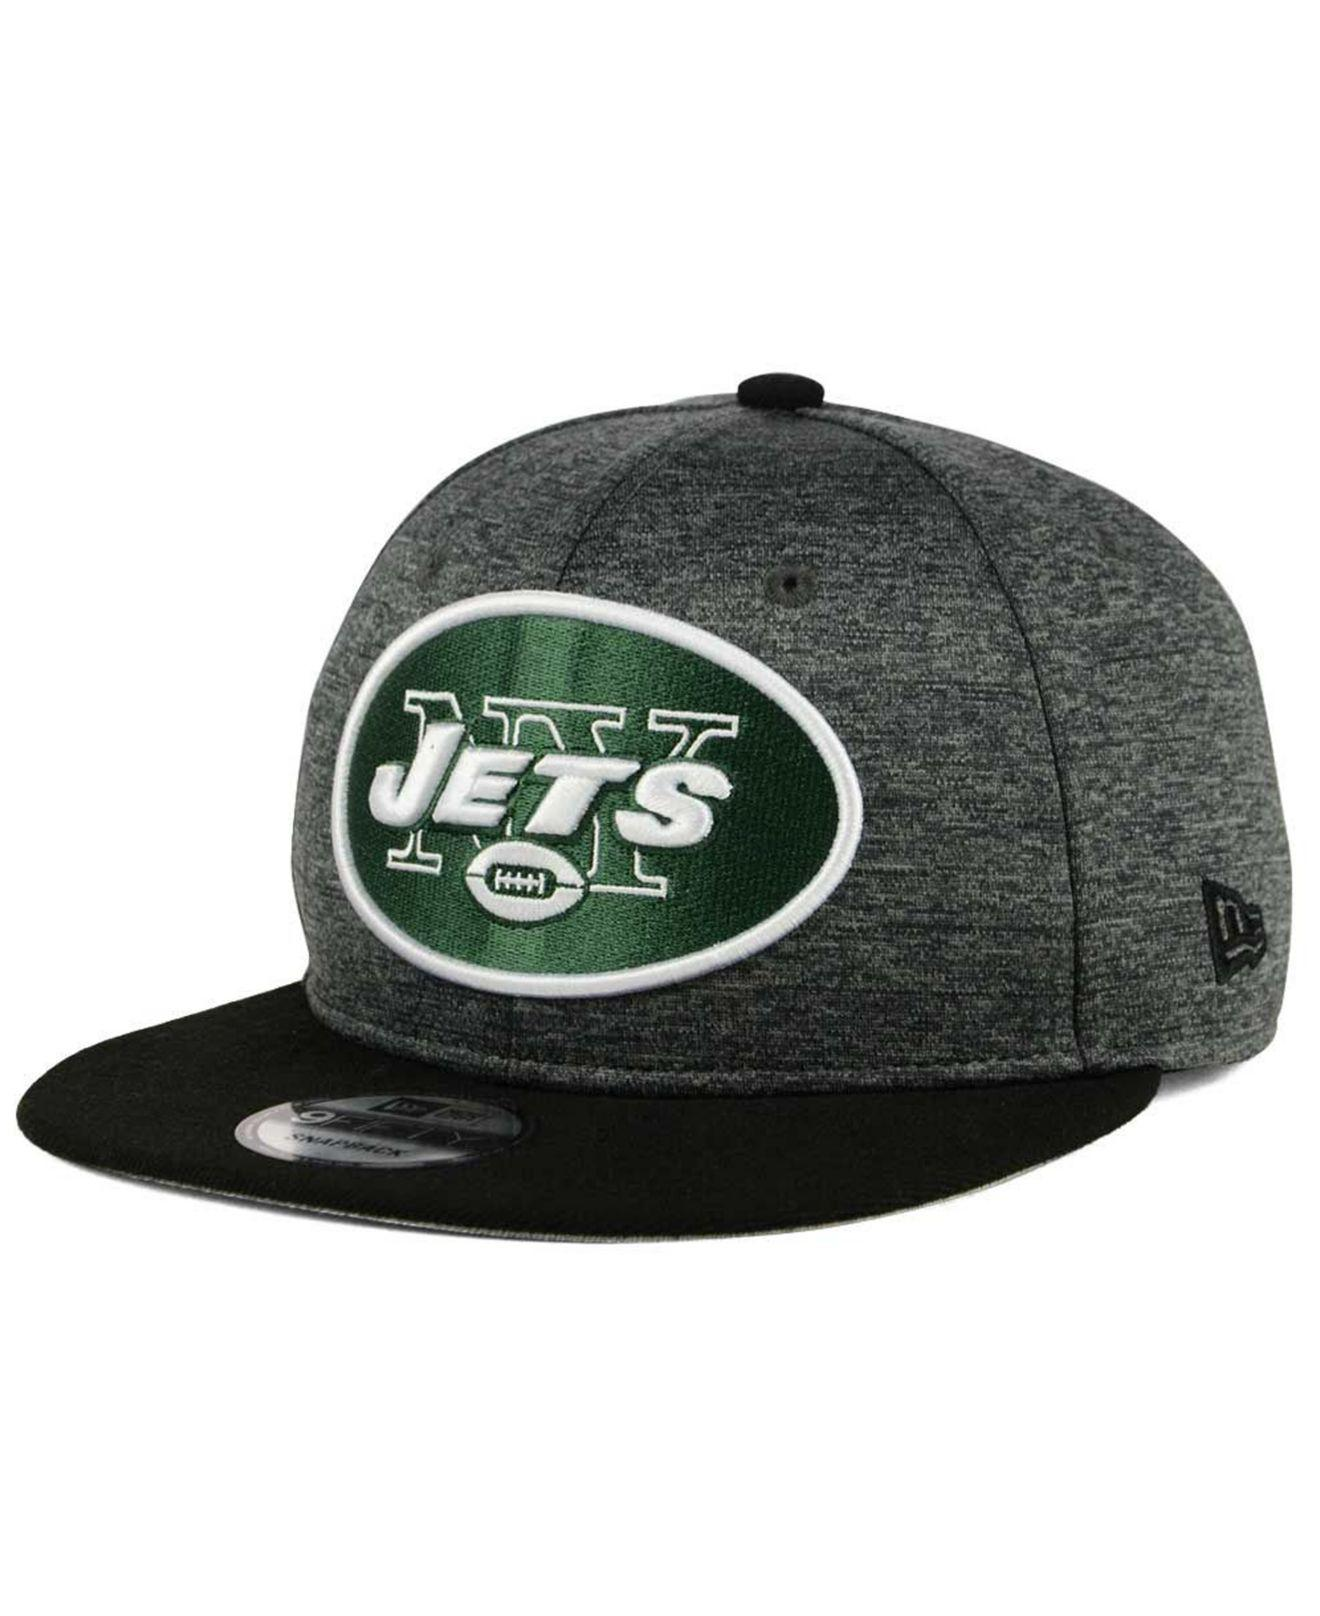 a2d7df349c0 Lyst - Ktz New York Jets Heather Huge 9fifty Snapback Cap for Men